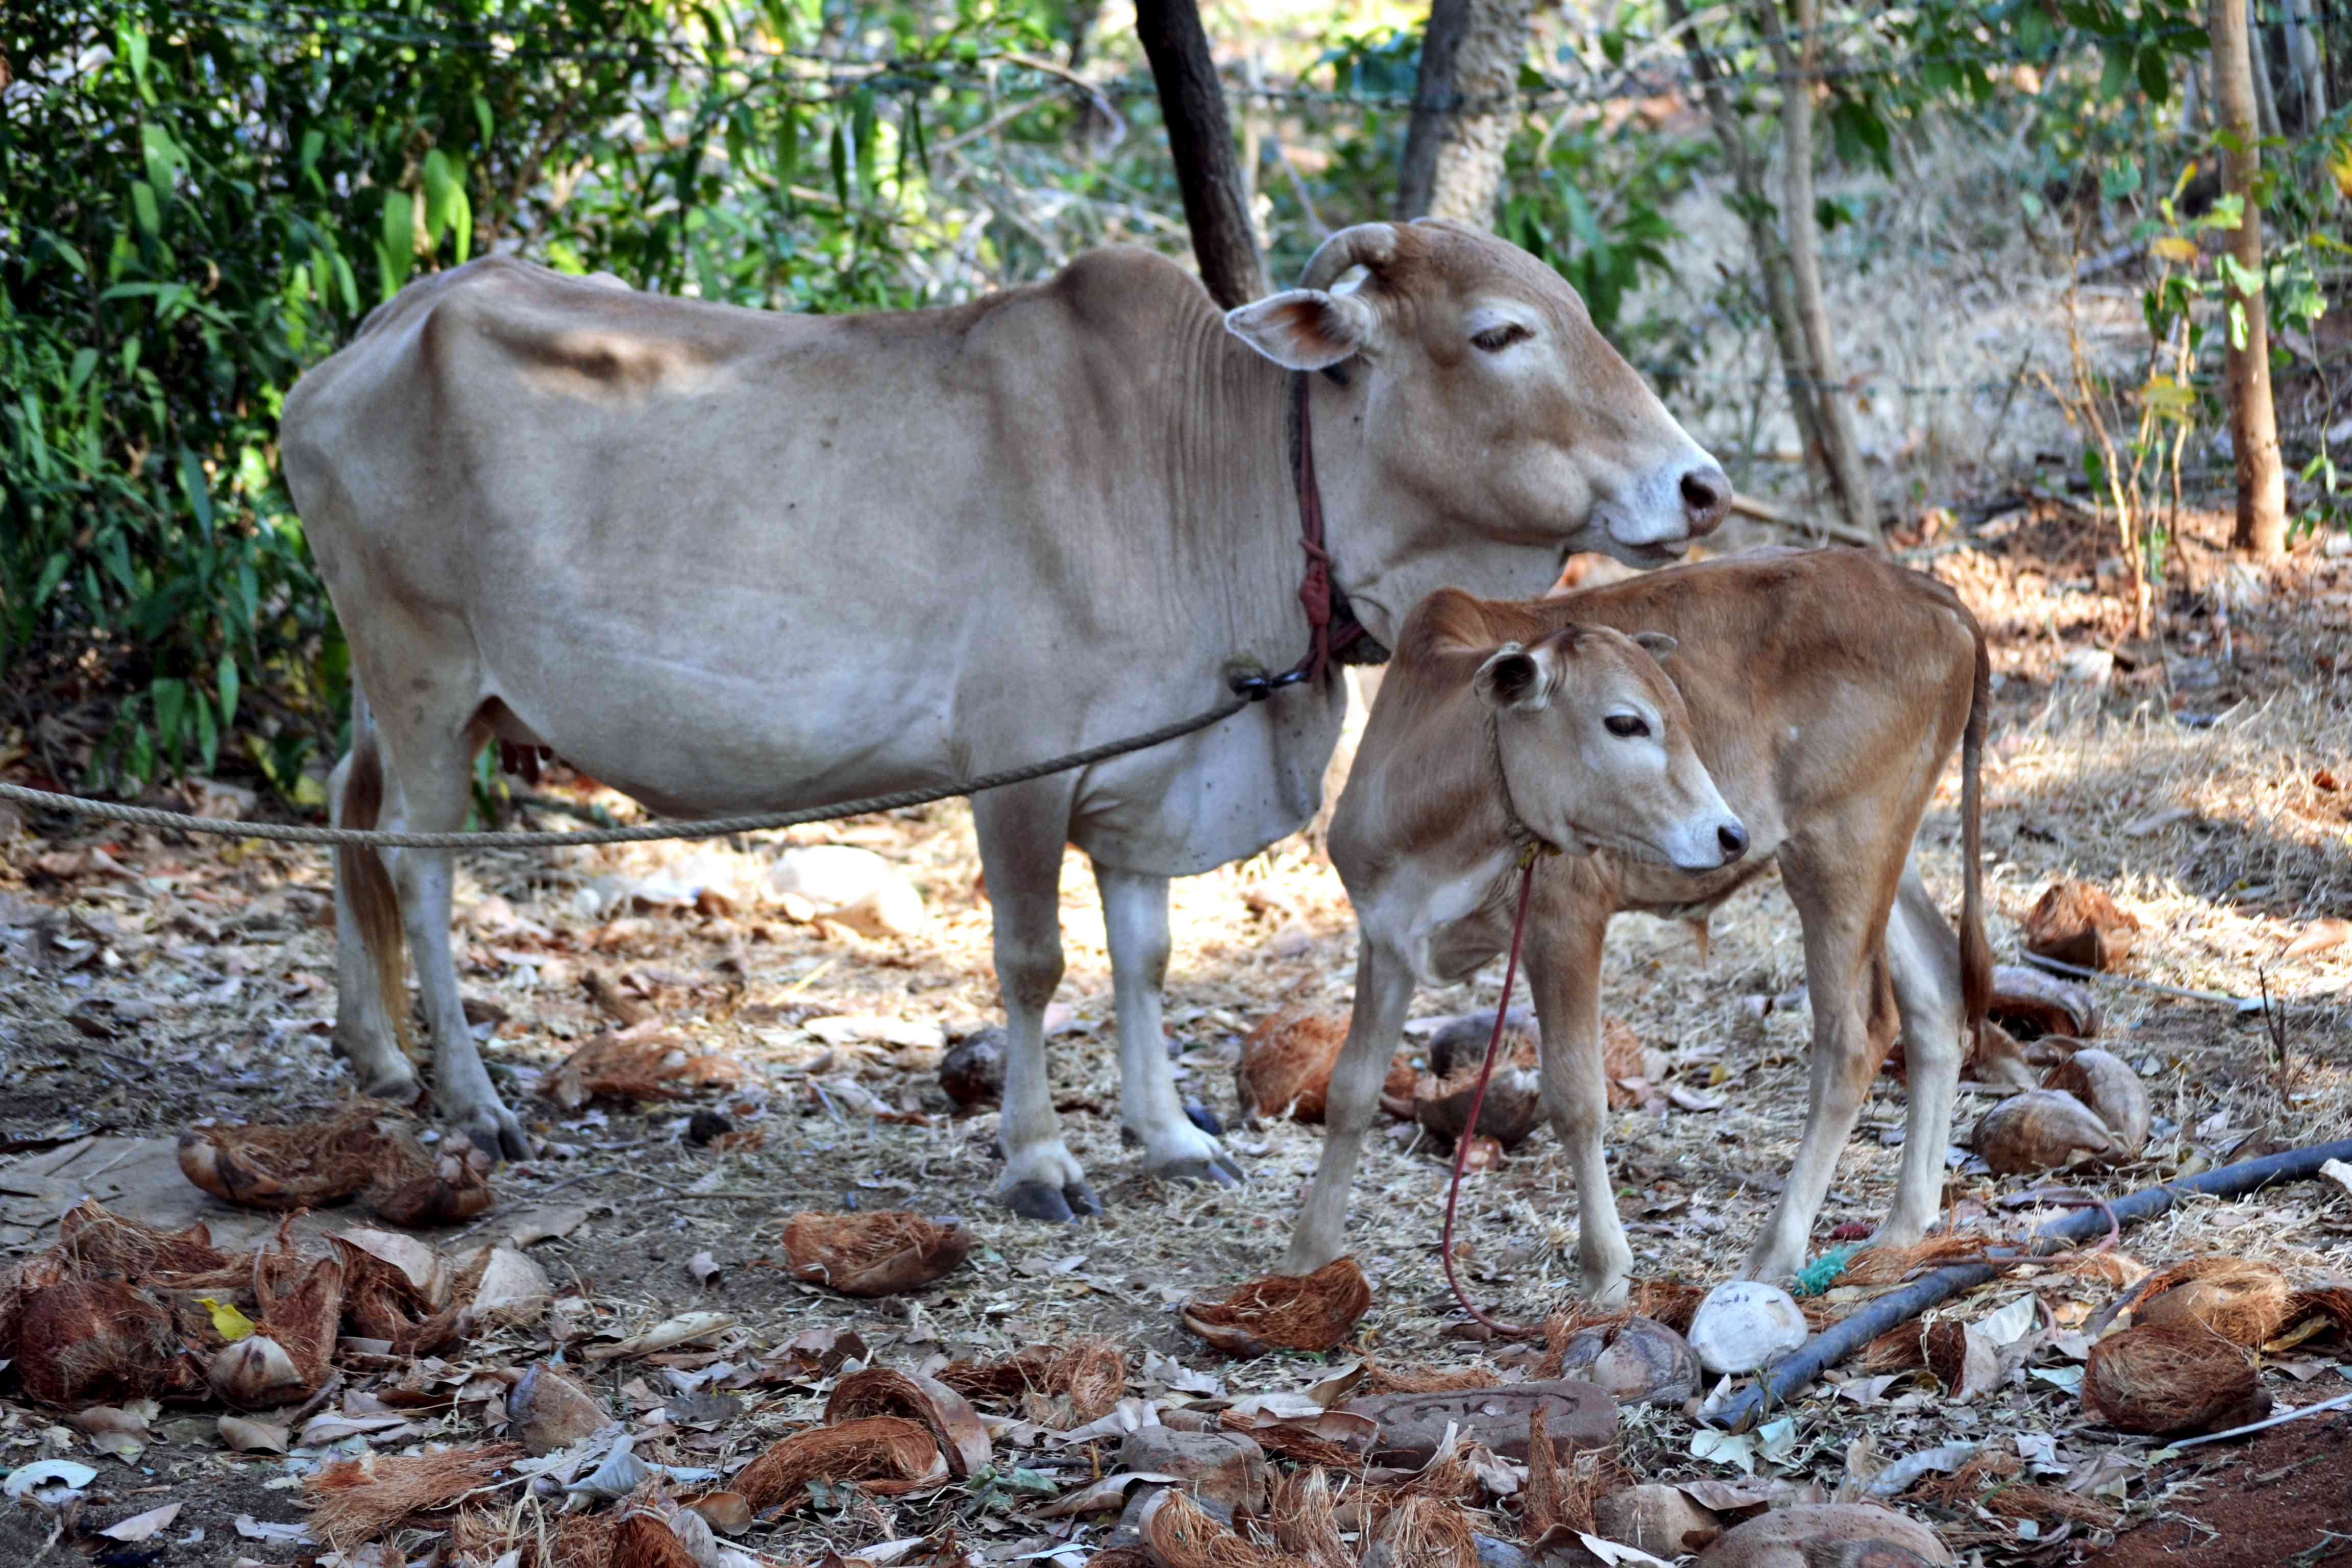 A tan vechur cow and and a brown and tan calf, standing next to green trees